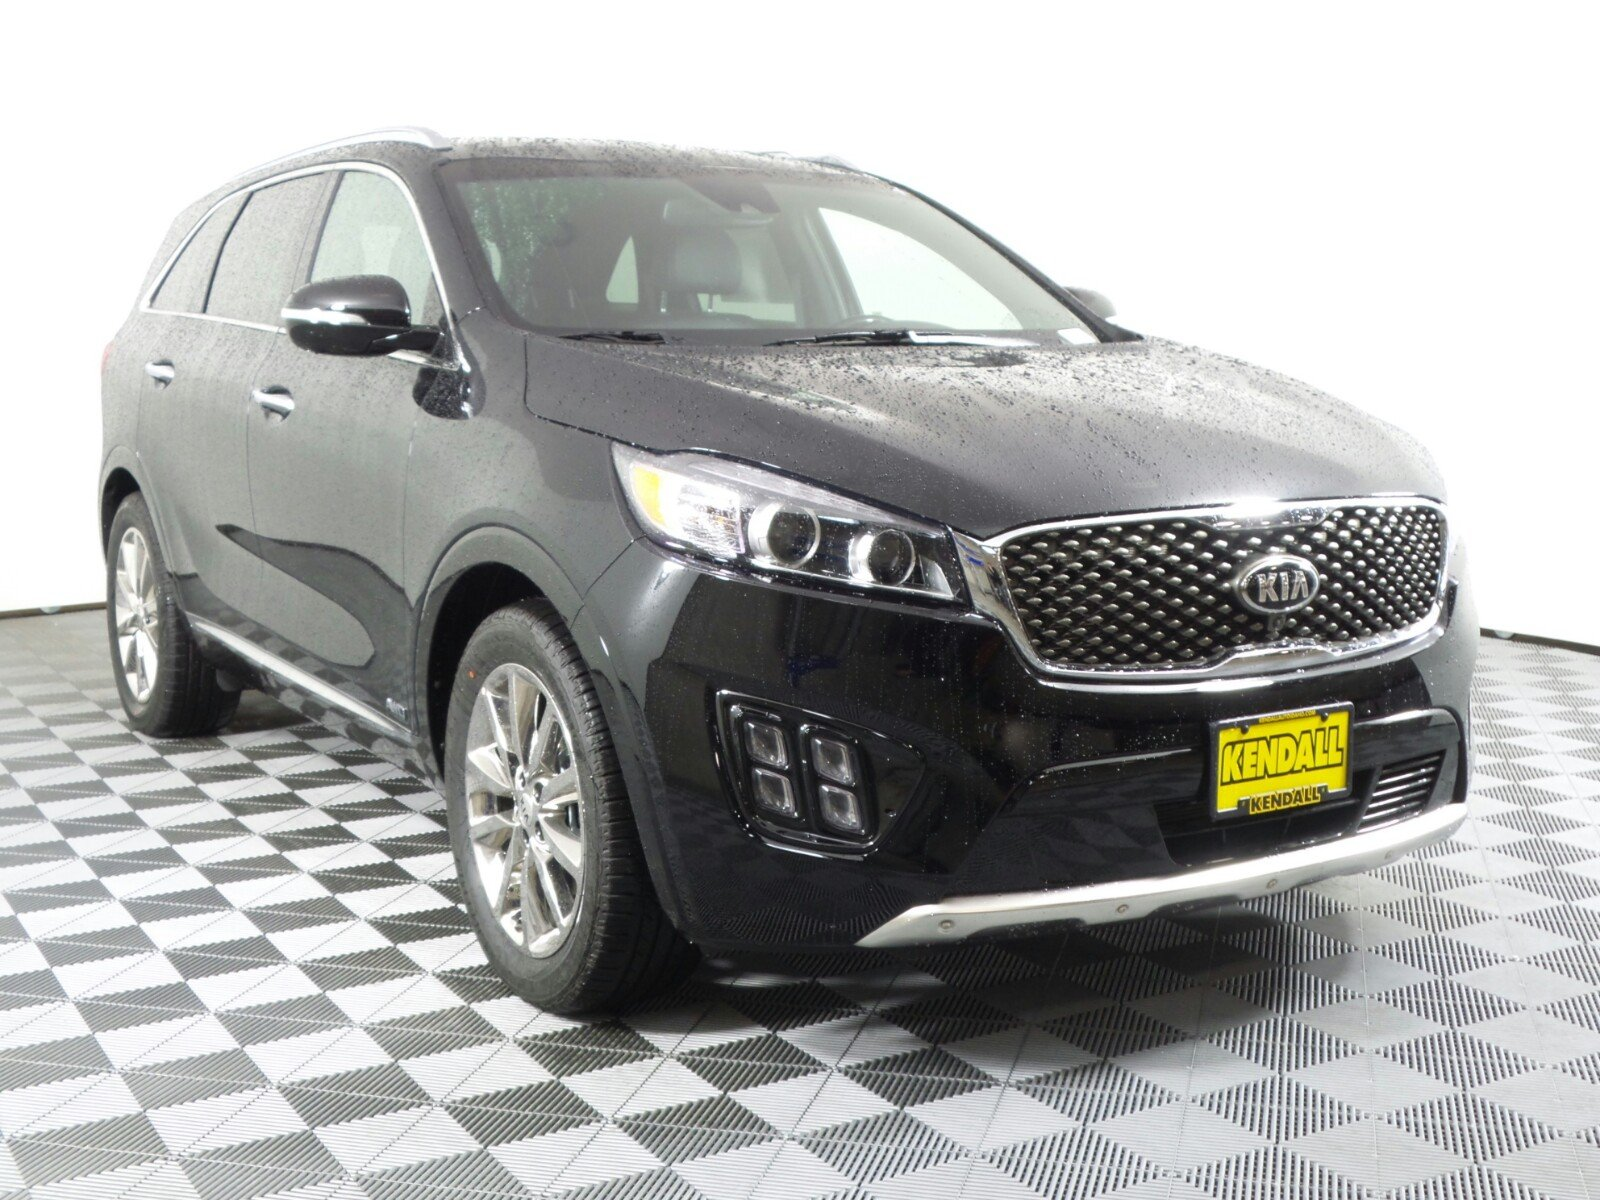 sorento all rimouski ford used en kia bouchard sale cars suv awd quebec for in lx bodytypes